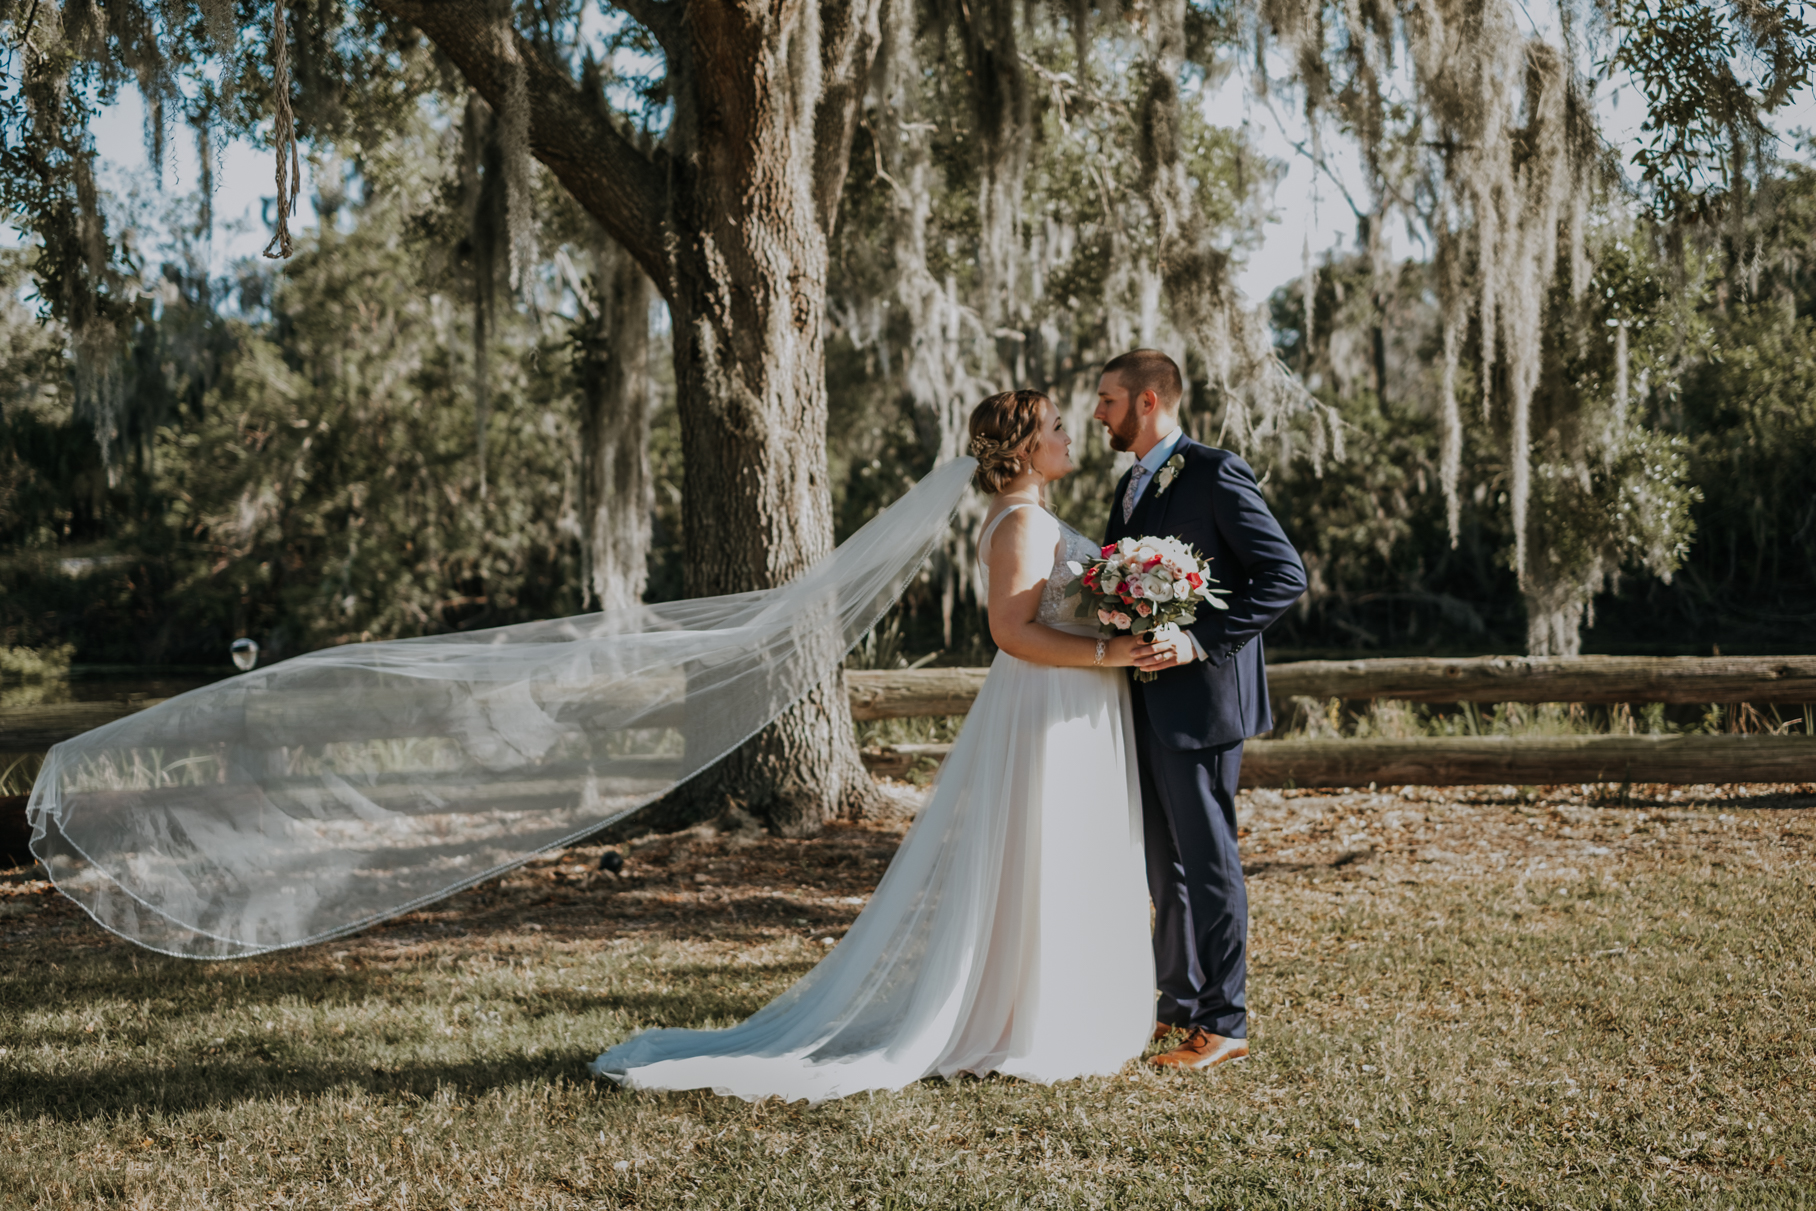 katie + chris | florida rustic barn wedding | plant city wedding | tampa wedding photographer